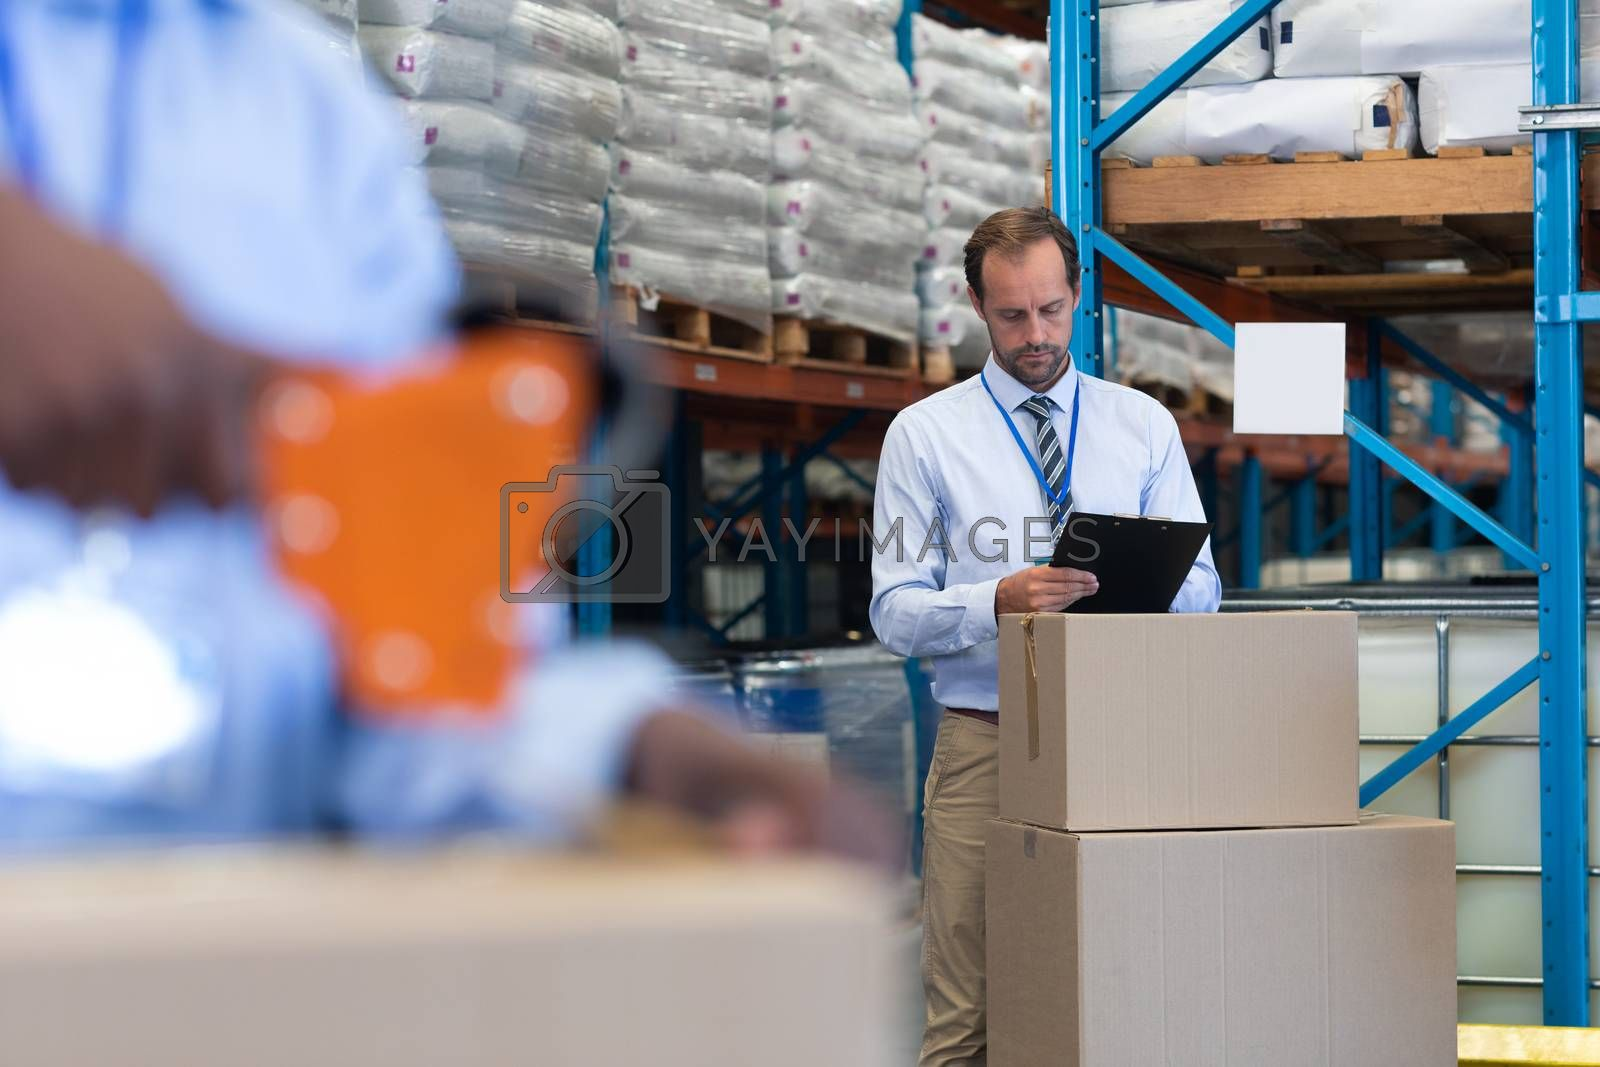 Front view of handsome mature Caucasian male supervisor working on clipboard while African-american staff works on the foreground in warehouse. This is a freight transportation and distribution warehouse. Industrial and industrial workers concept